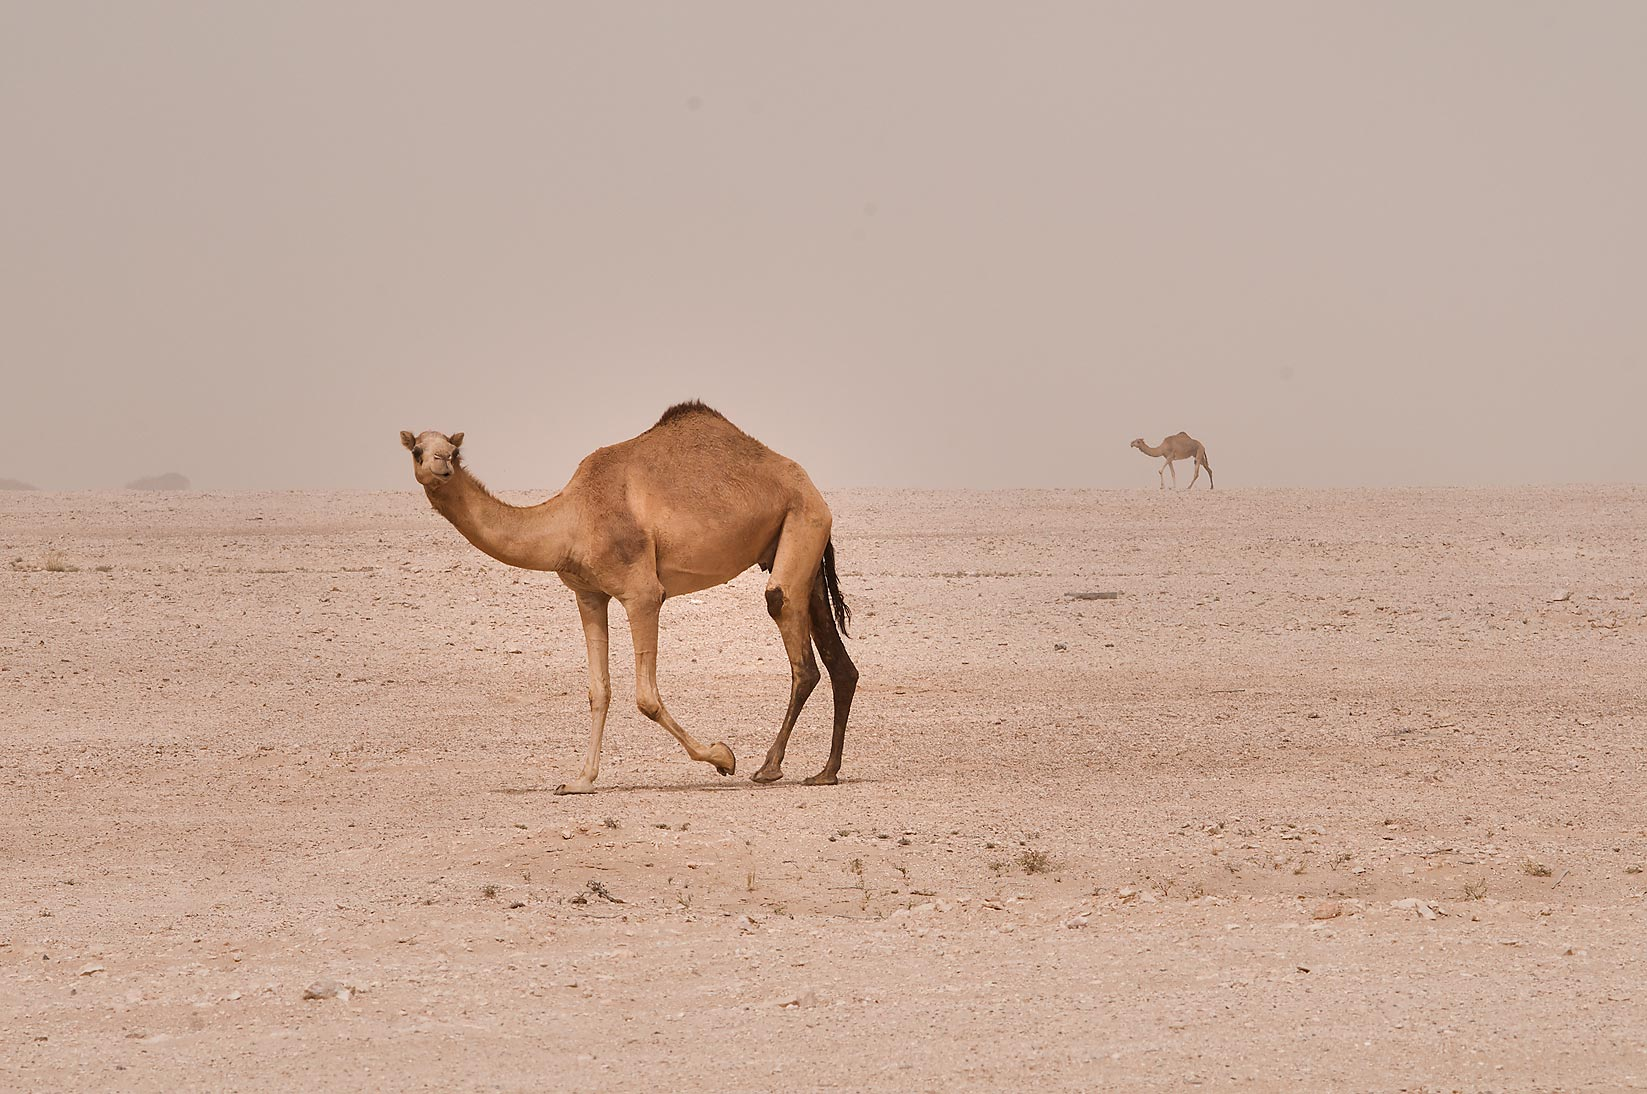 A camel in desert near Mesayeed, south-west from Doha, view from a window of a car. Qatar